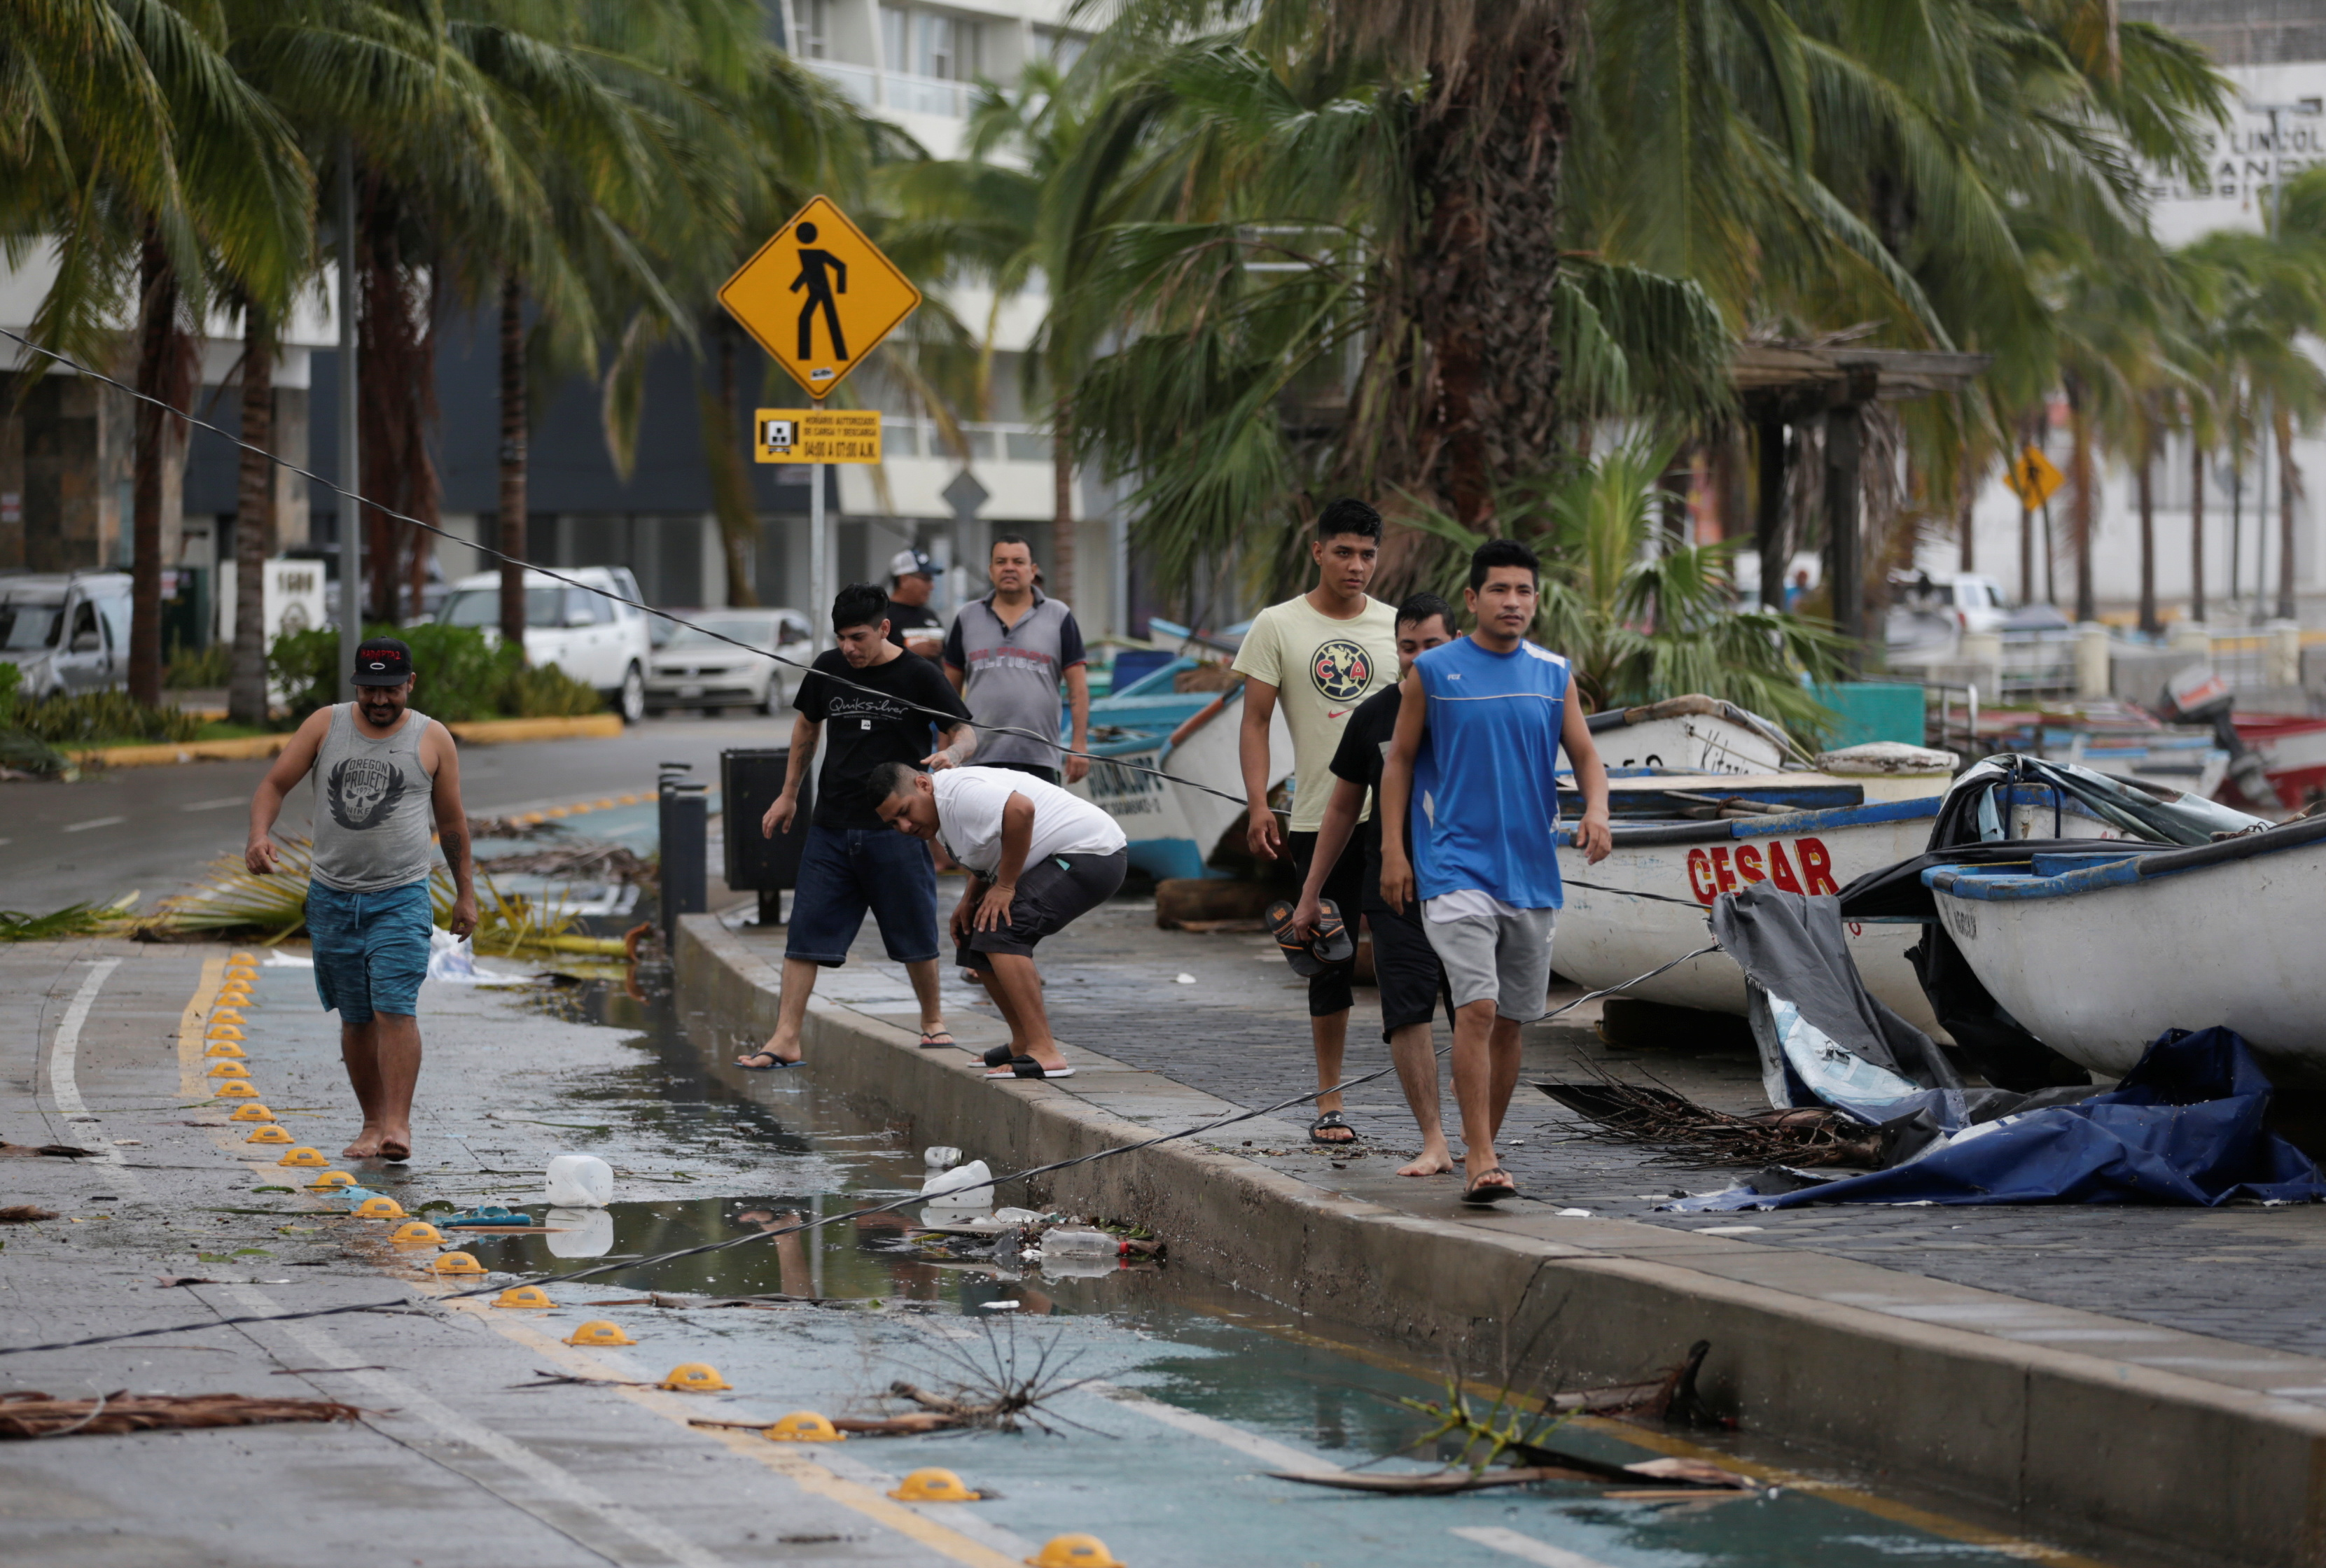 People walk along a street as hurricane Pamela pounds the Pacific coast resort with strong winds as it makes landfall in Mazatlan, Mexico October 13, 2021. REUTERS/Daniel Becerril